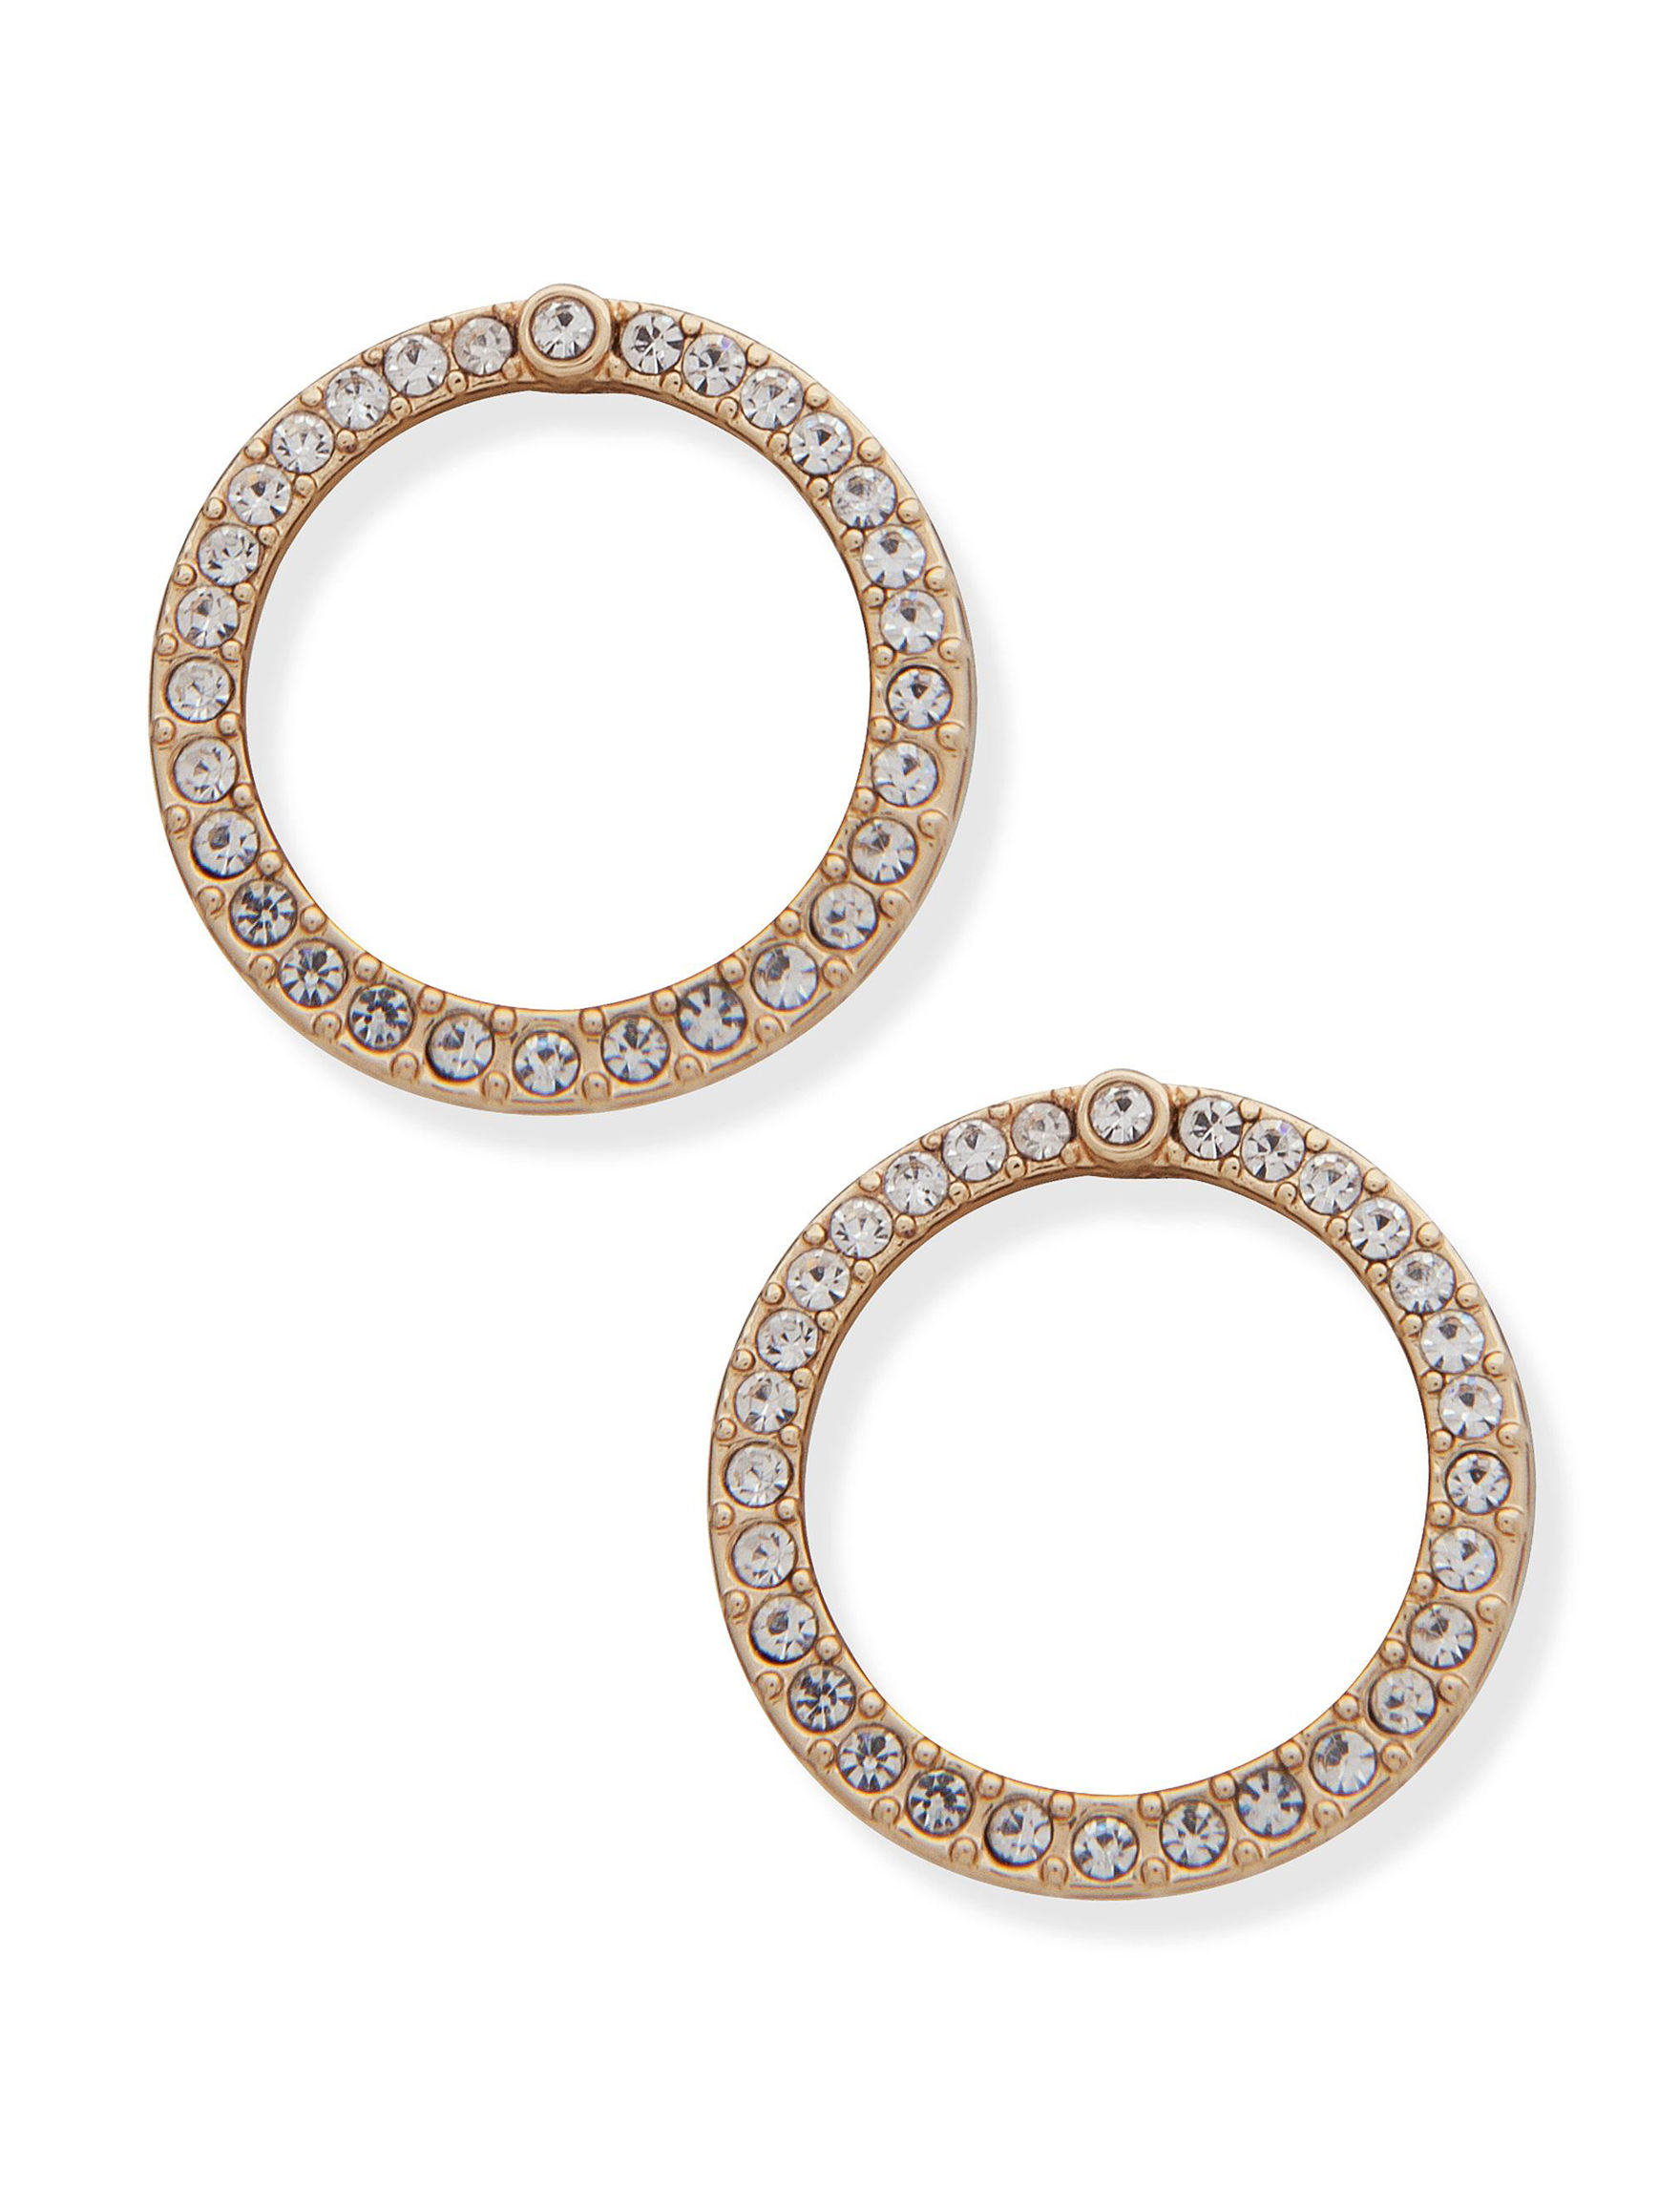 You're Invited Gold Hoops Earrings Fashion Jewelry